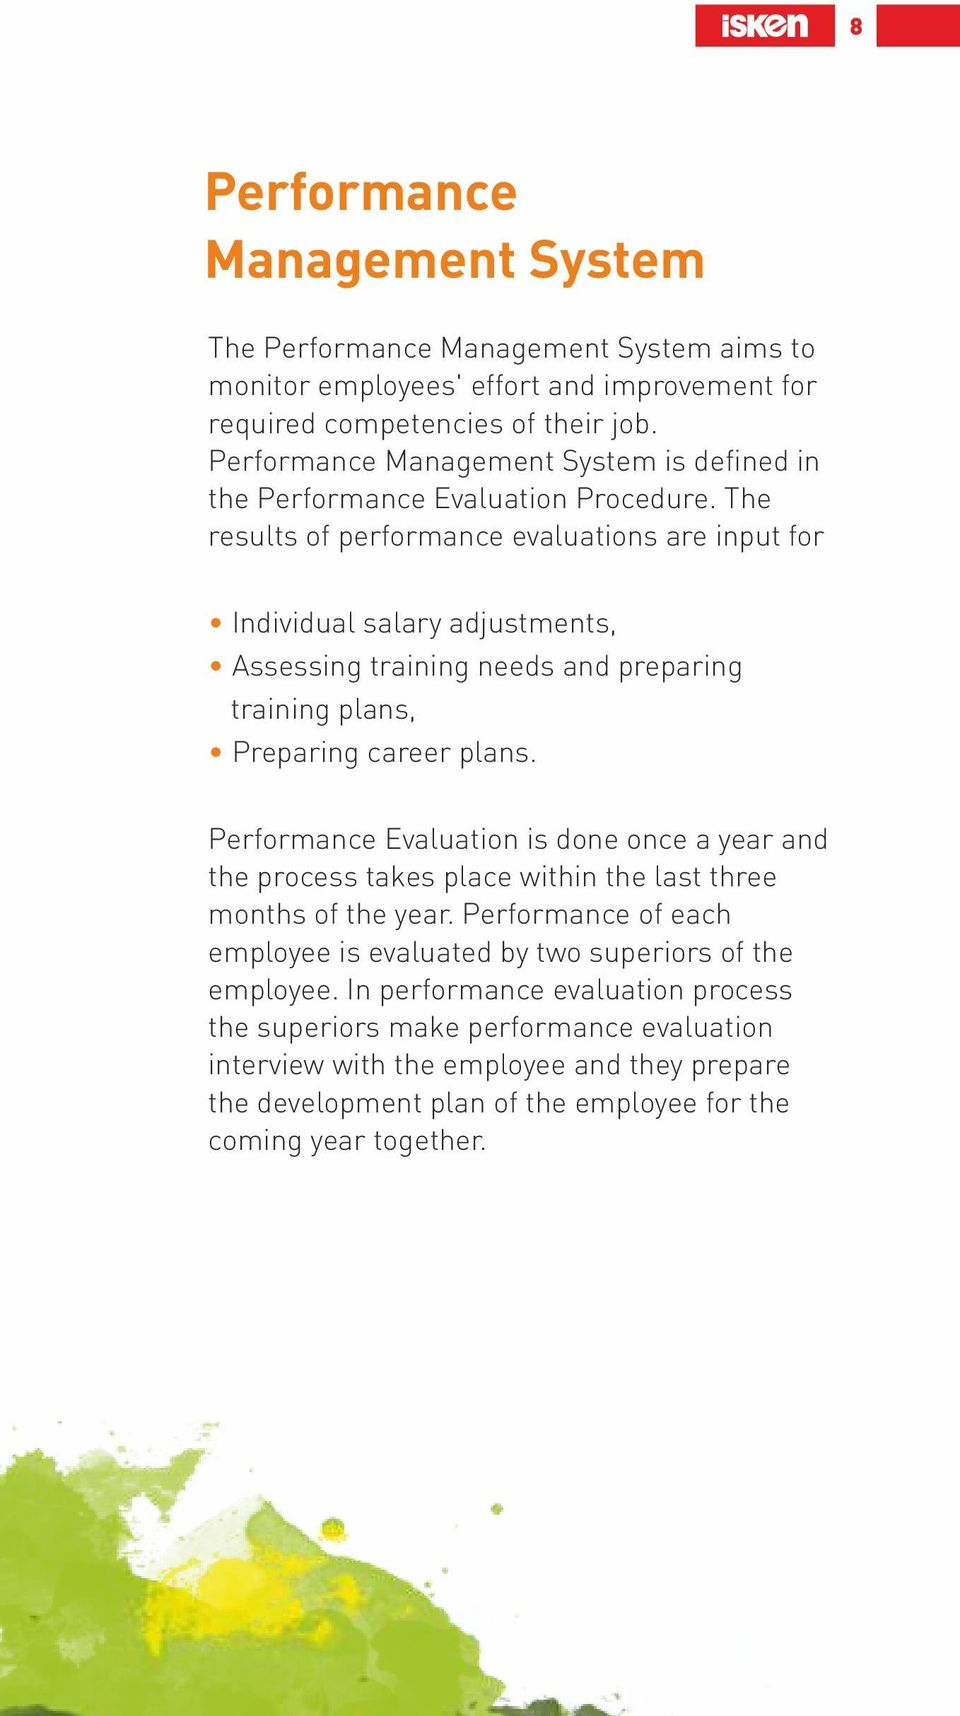 The results of performance evaluations are input for Individual salary adjustments, Assessing training needs and preparing training plans, Preparing career plans.